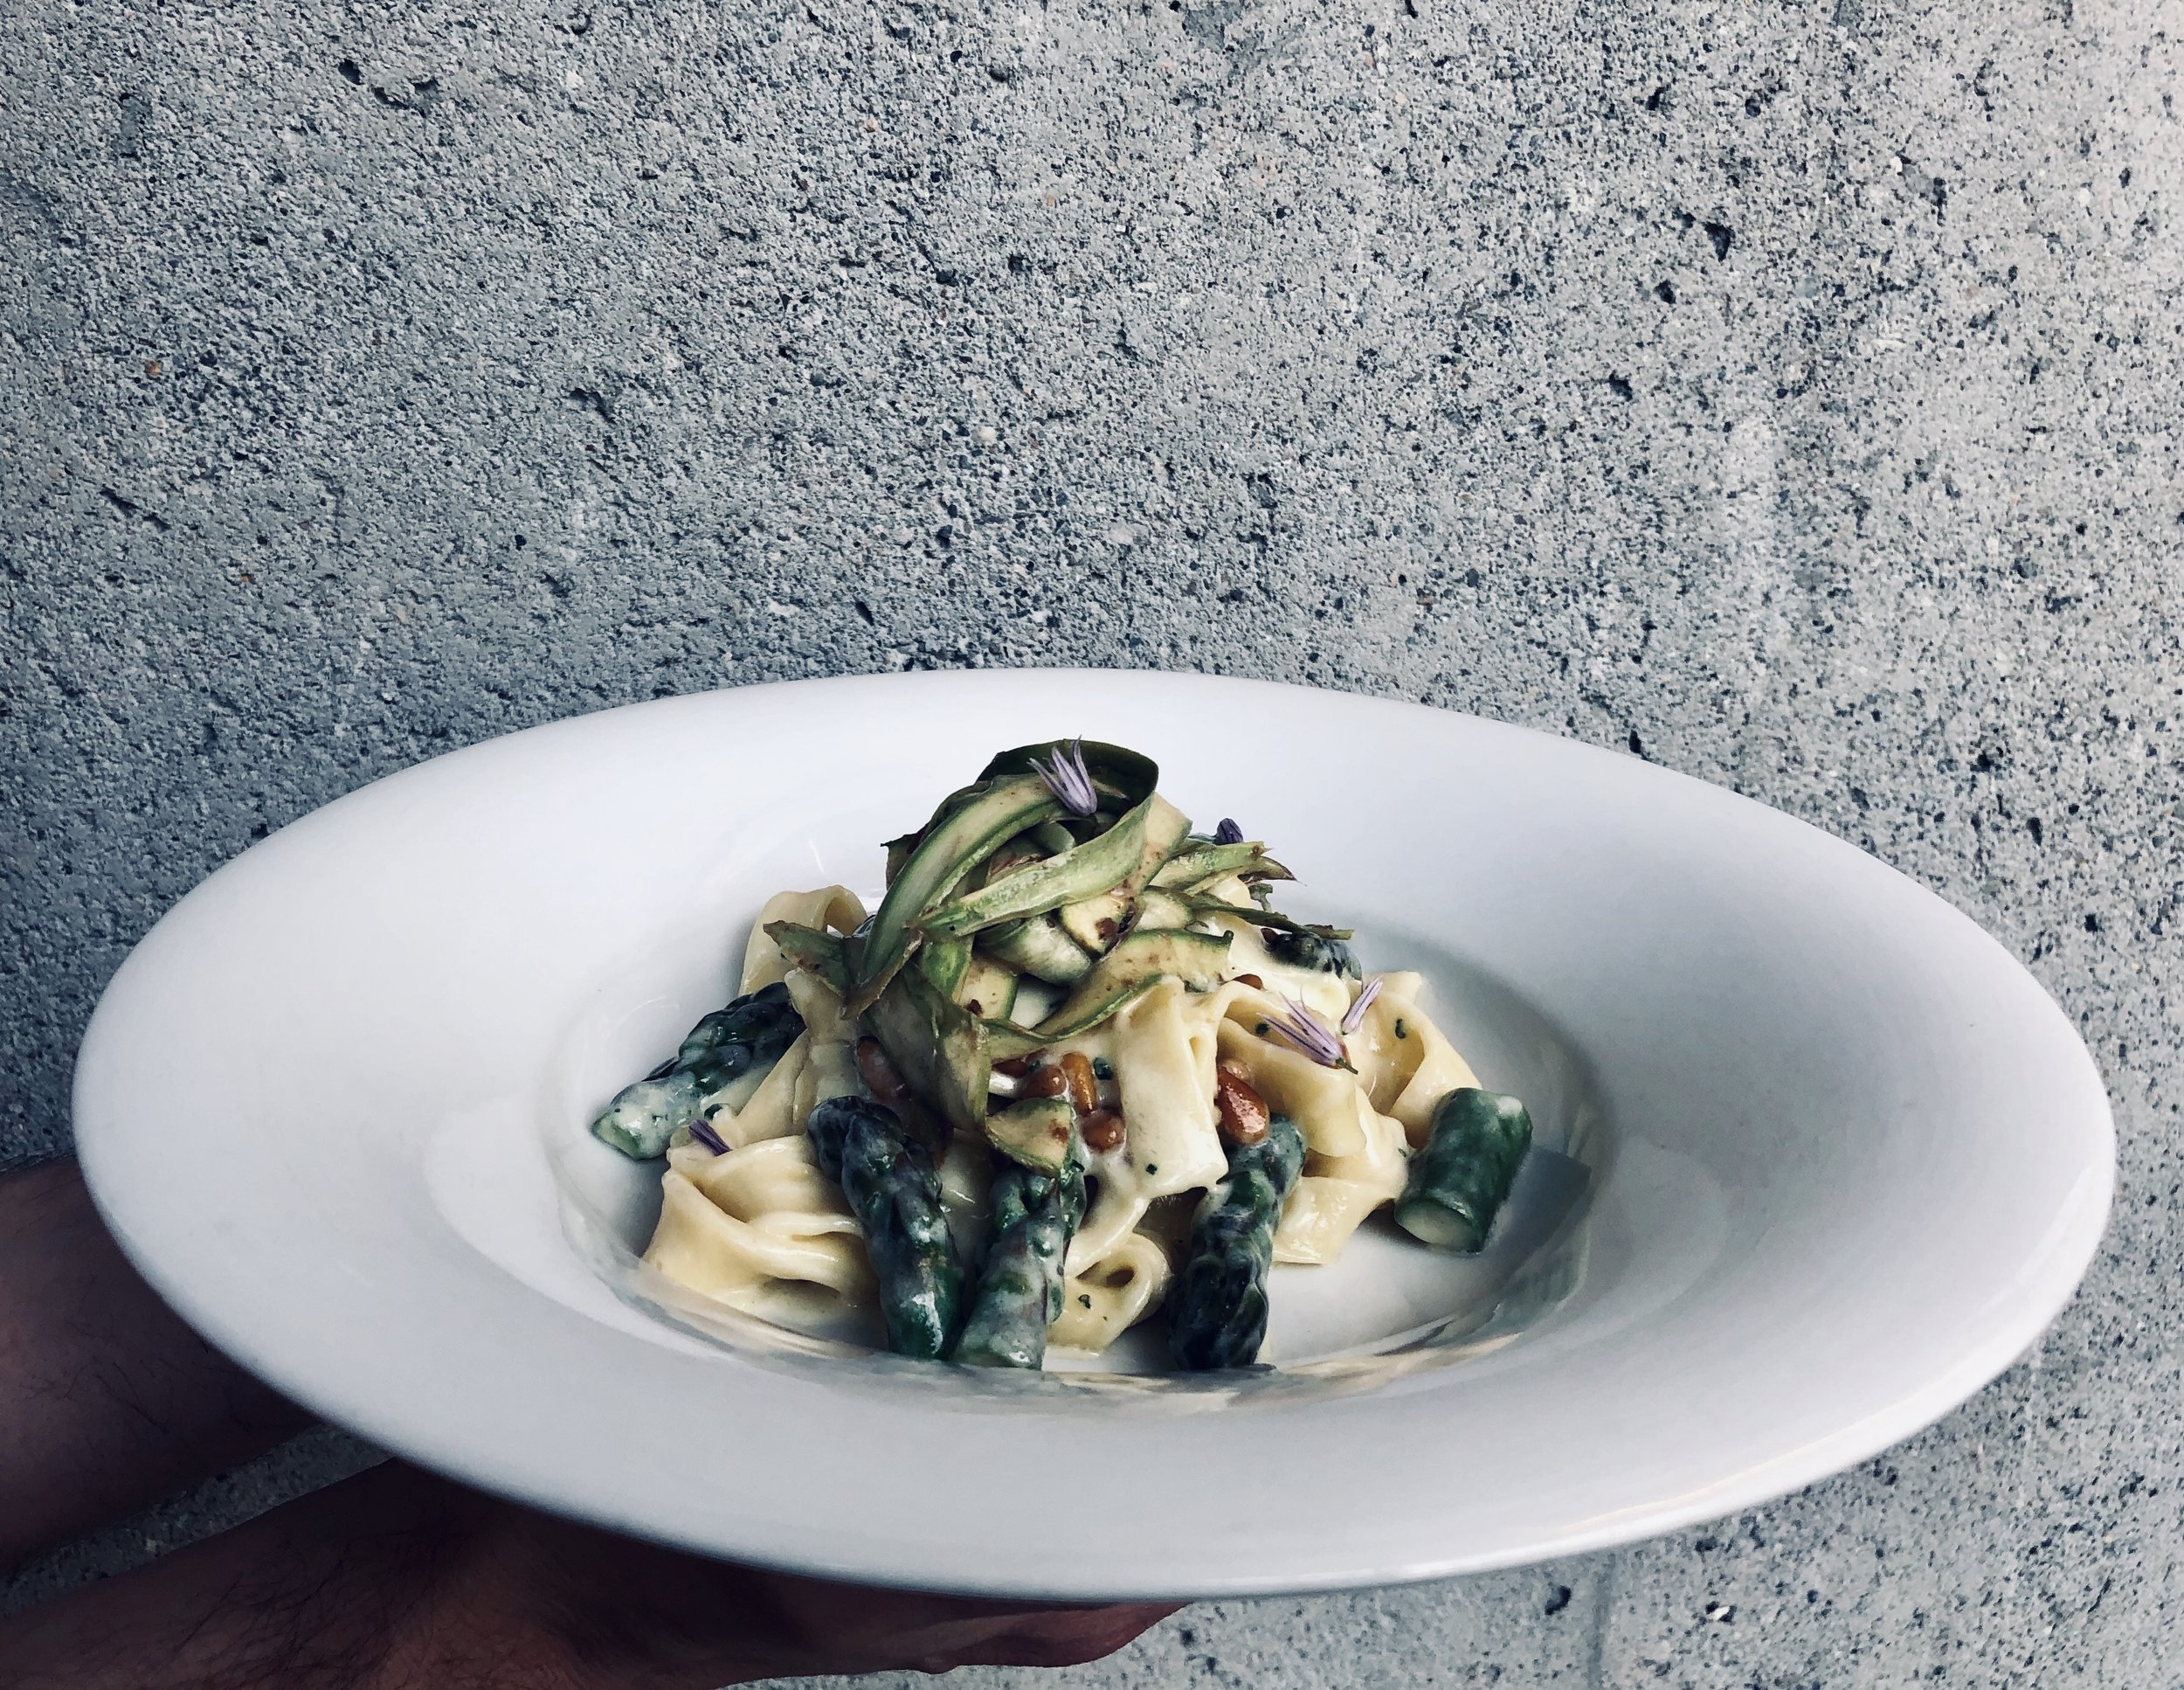 Tagliatelle with asparagus, pine nut butter sauce, black garlic, and pecorino.